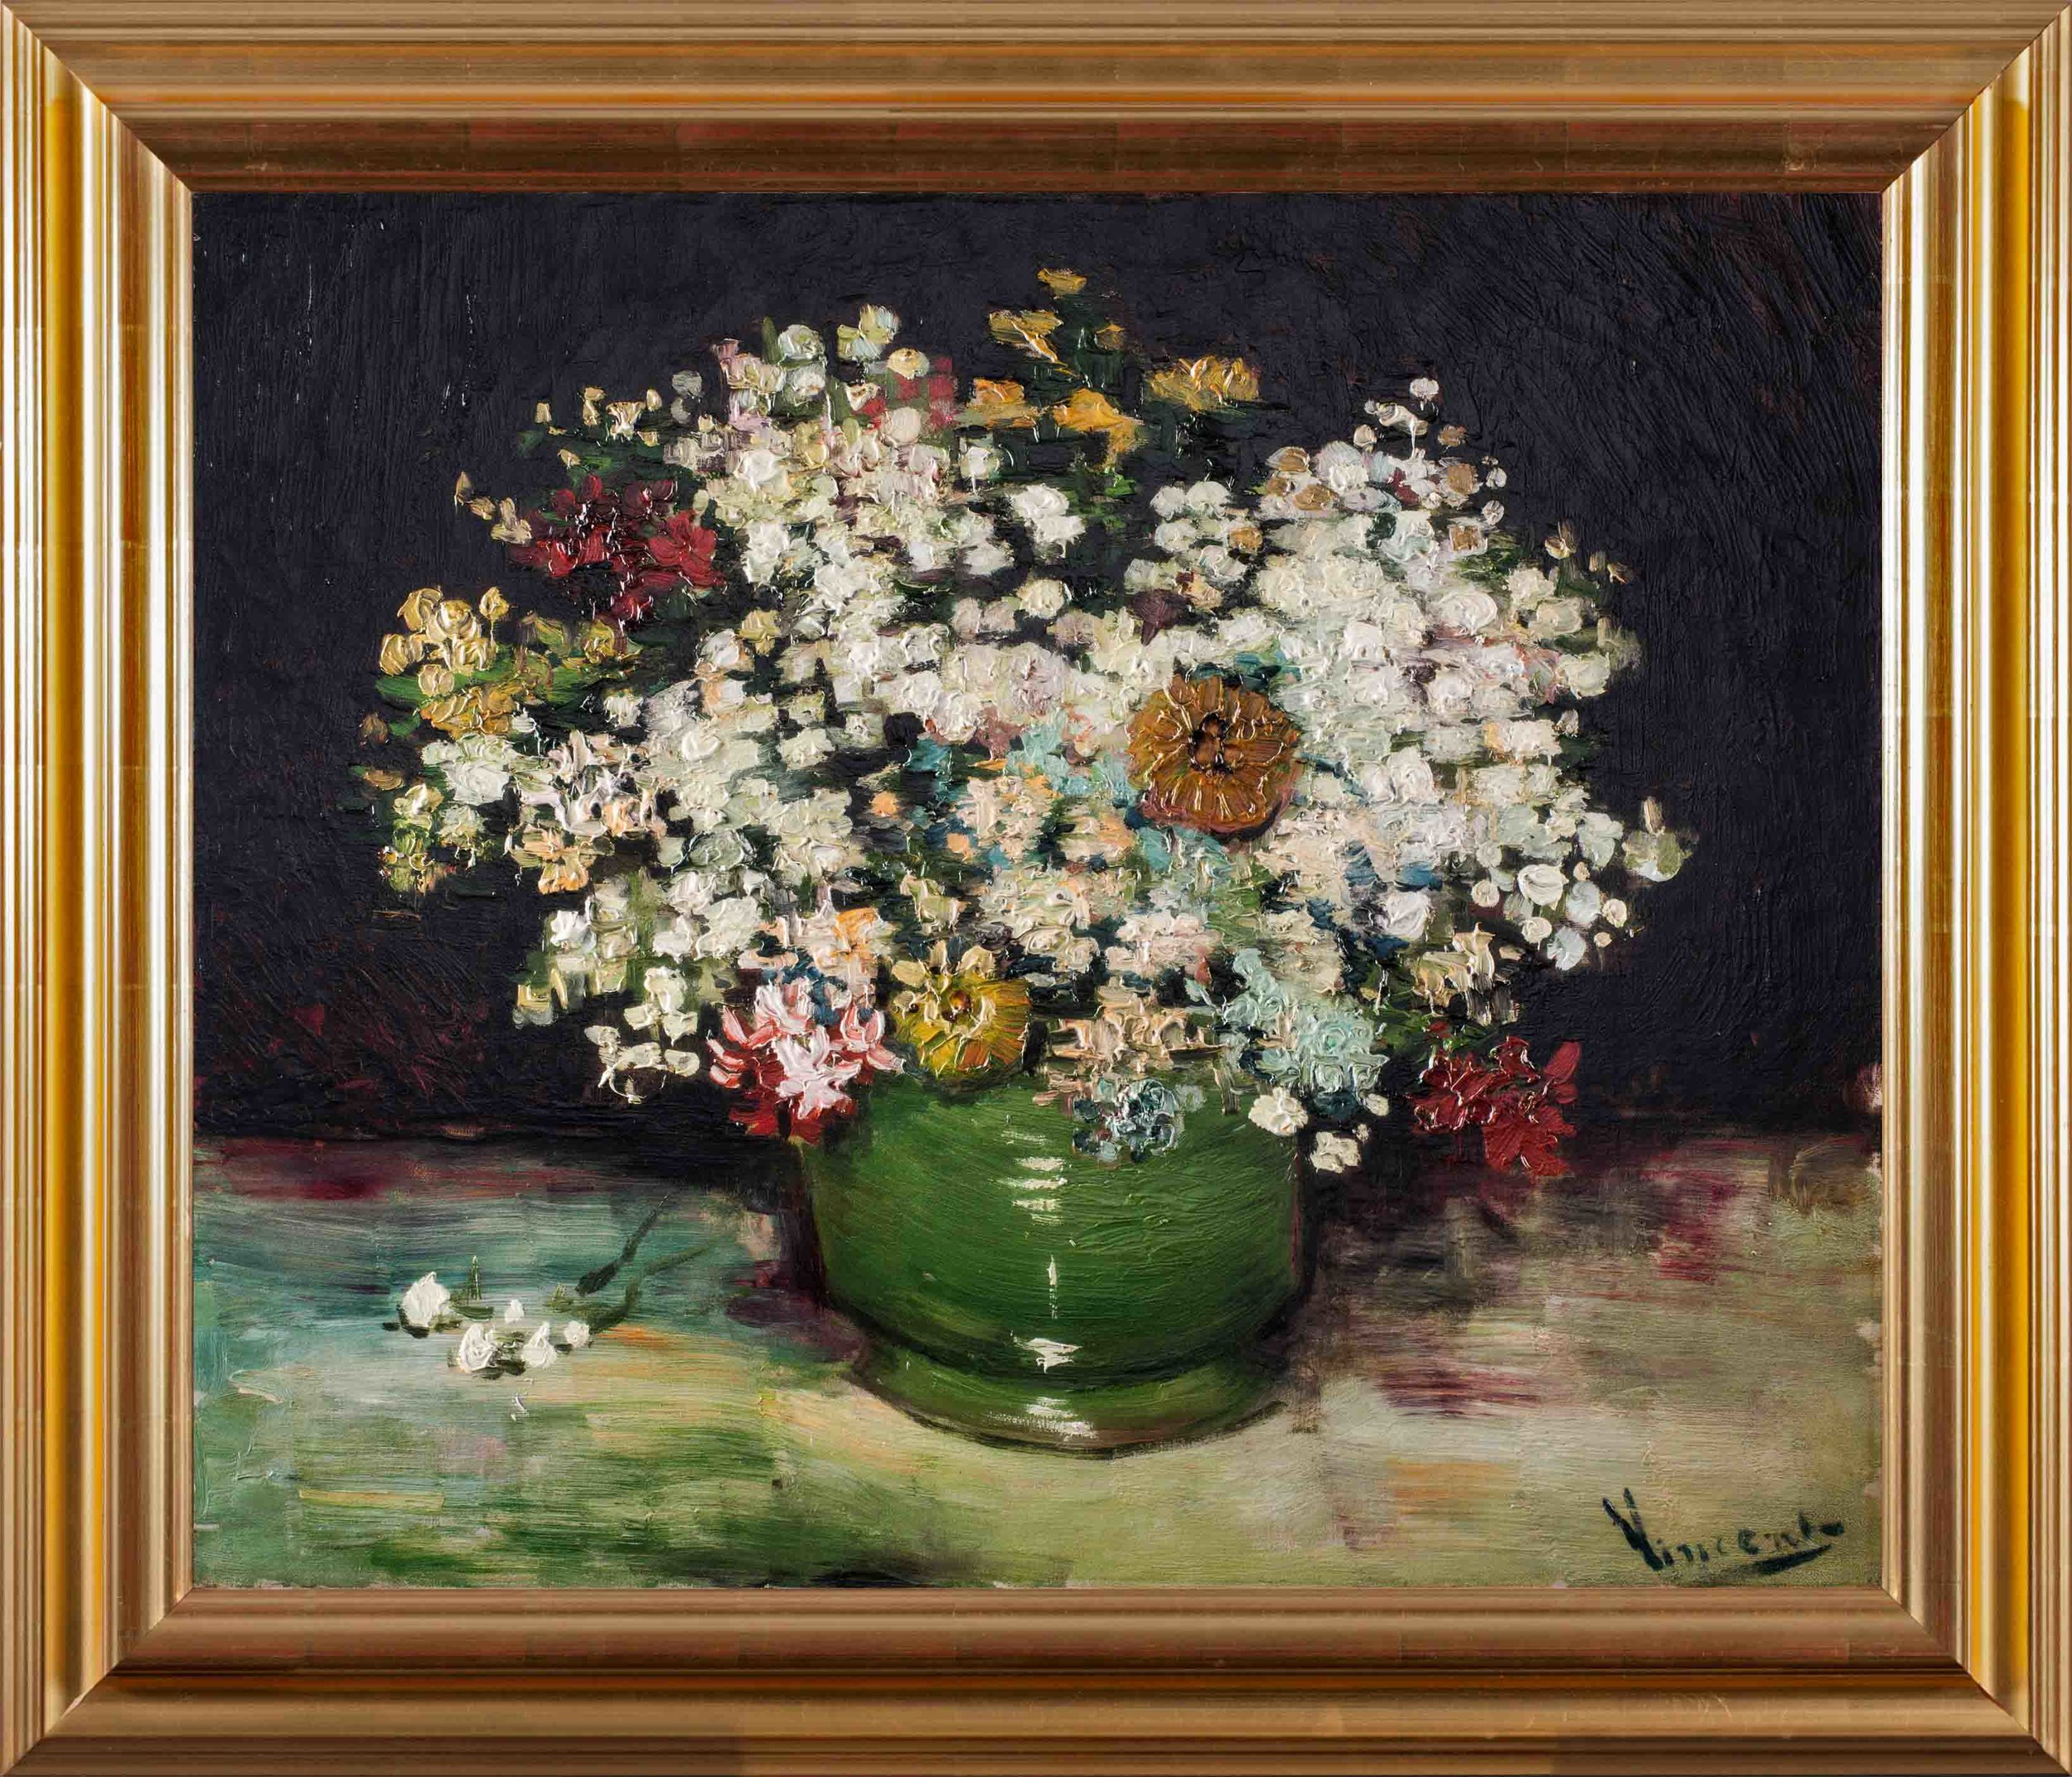 Bowl of Zinnias and Other Flowers